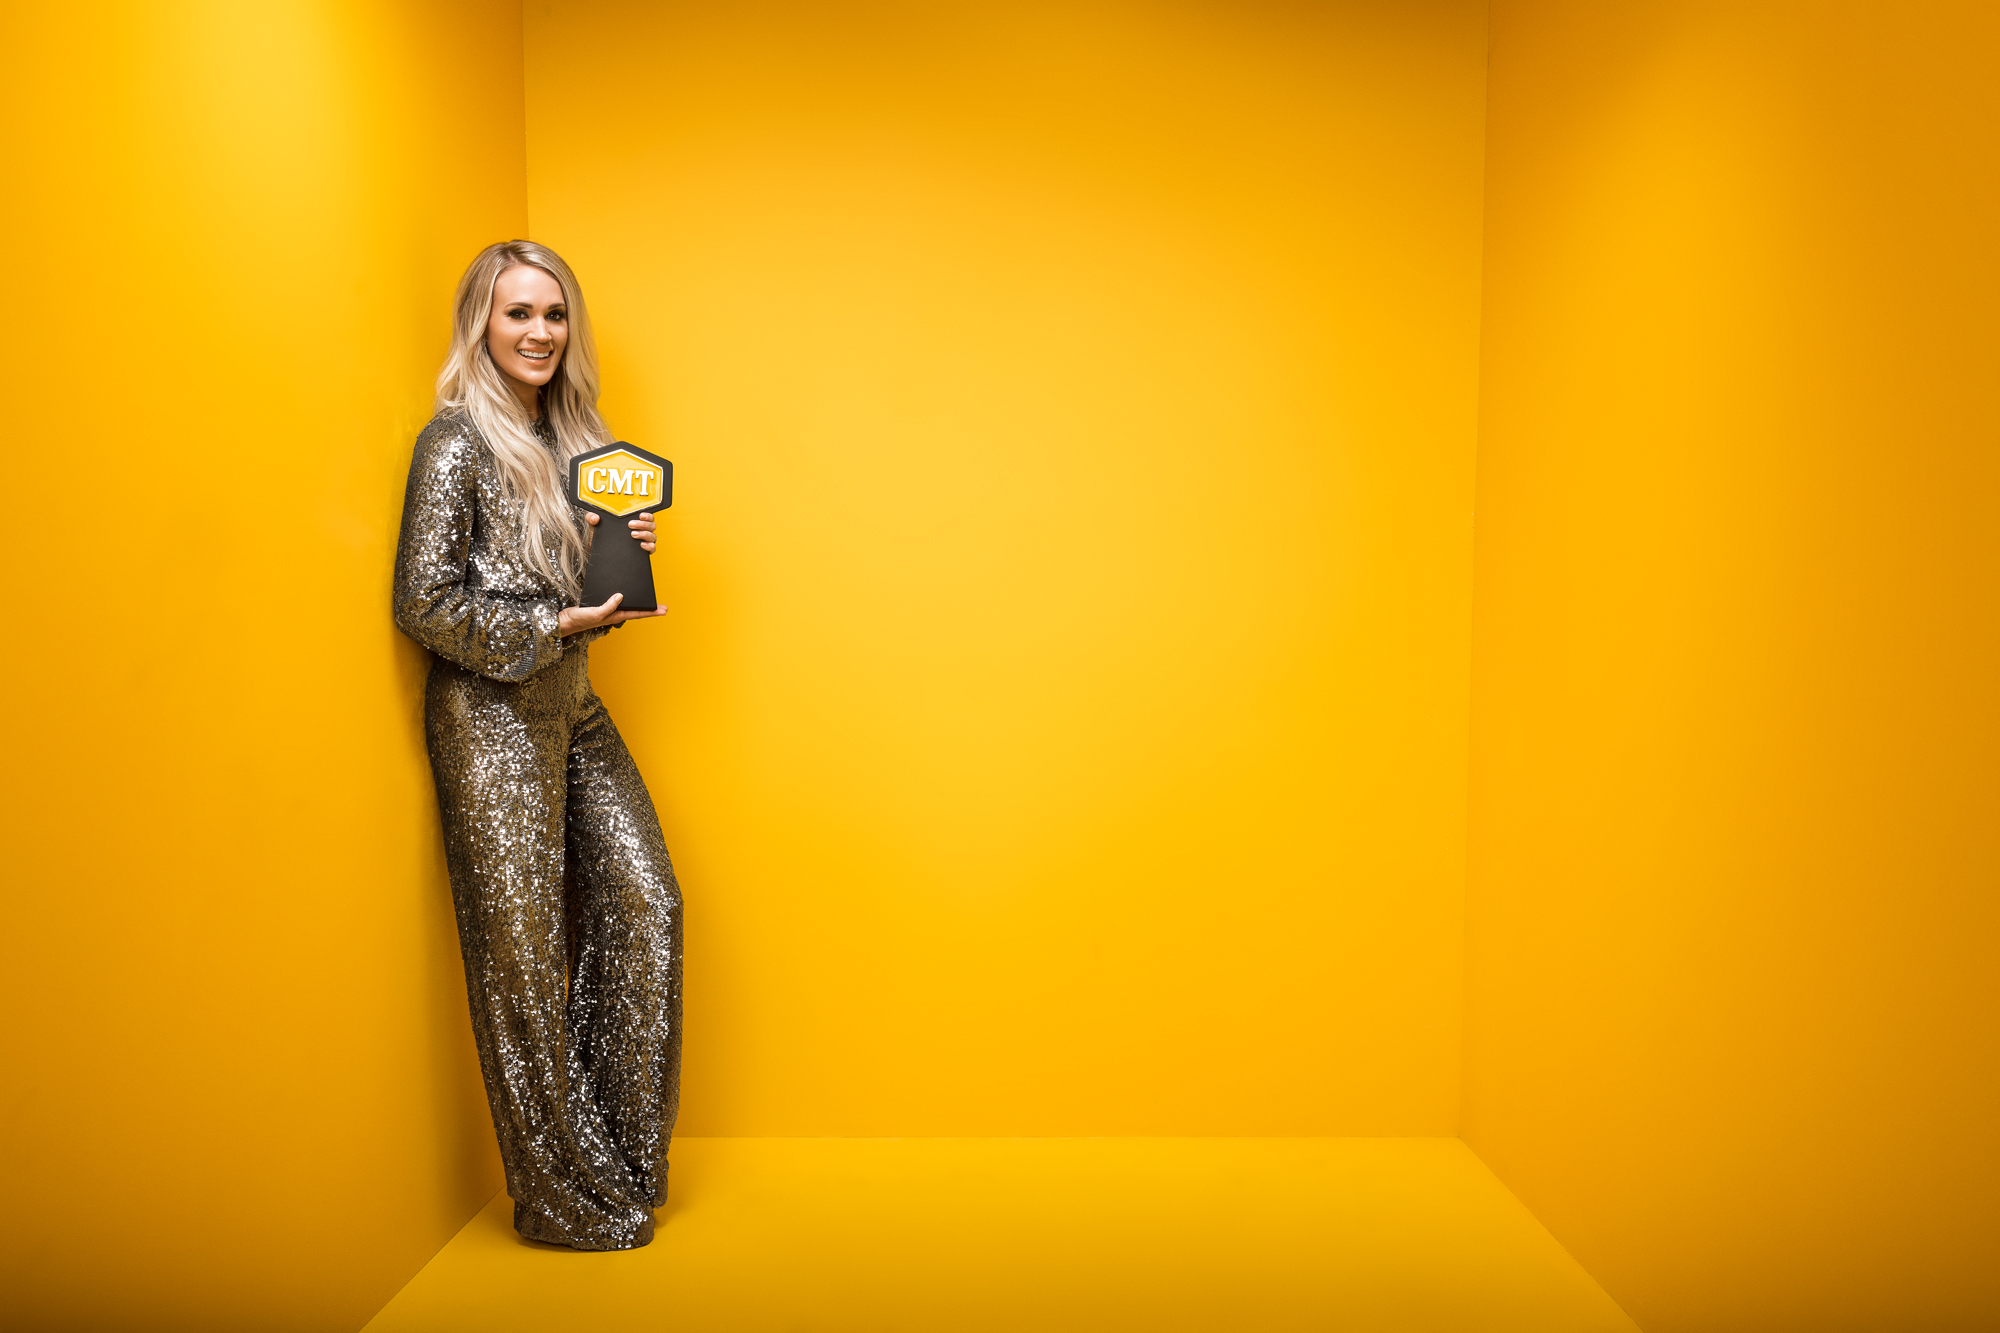 CARRIE-UNDERWOOD-CMT-MUSIC-AWARDS-YELLOW-BOX-PHOTO-RSB.jpg